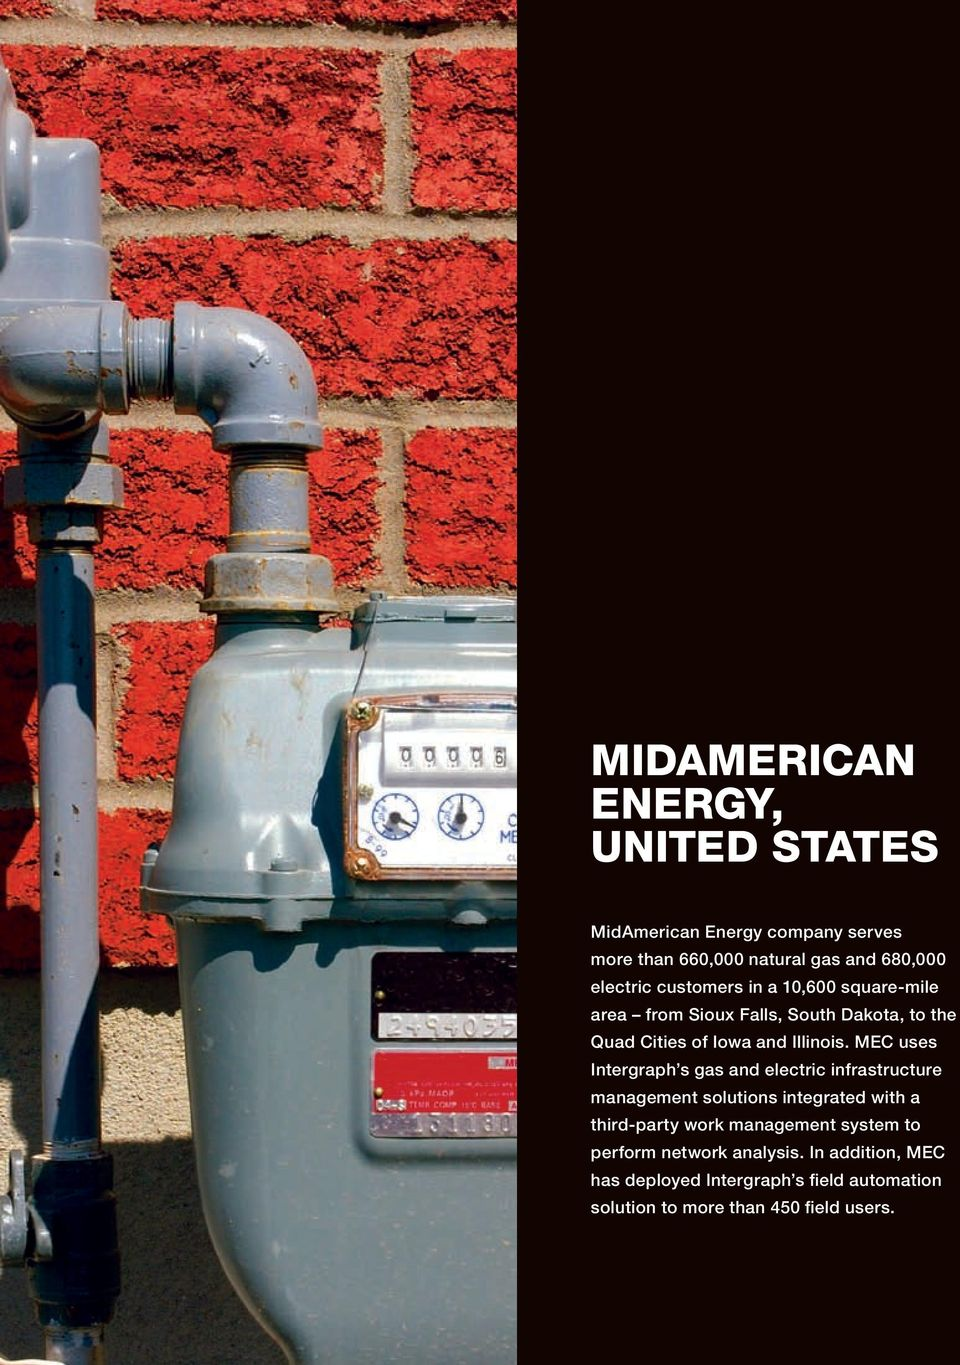 MEC uses Intergraph s gas and electric infrastructure management solutions integrated with a third-party work management